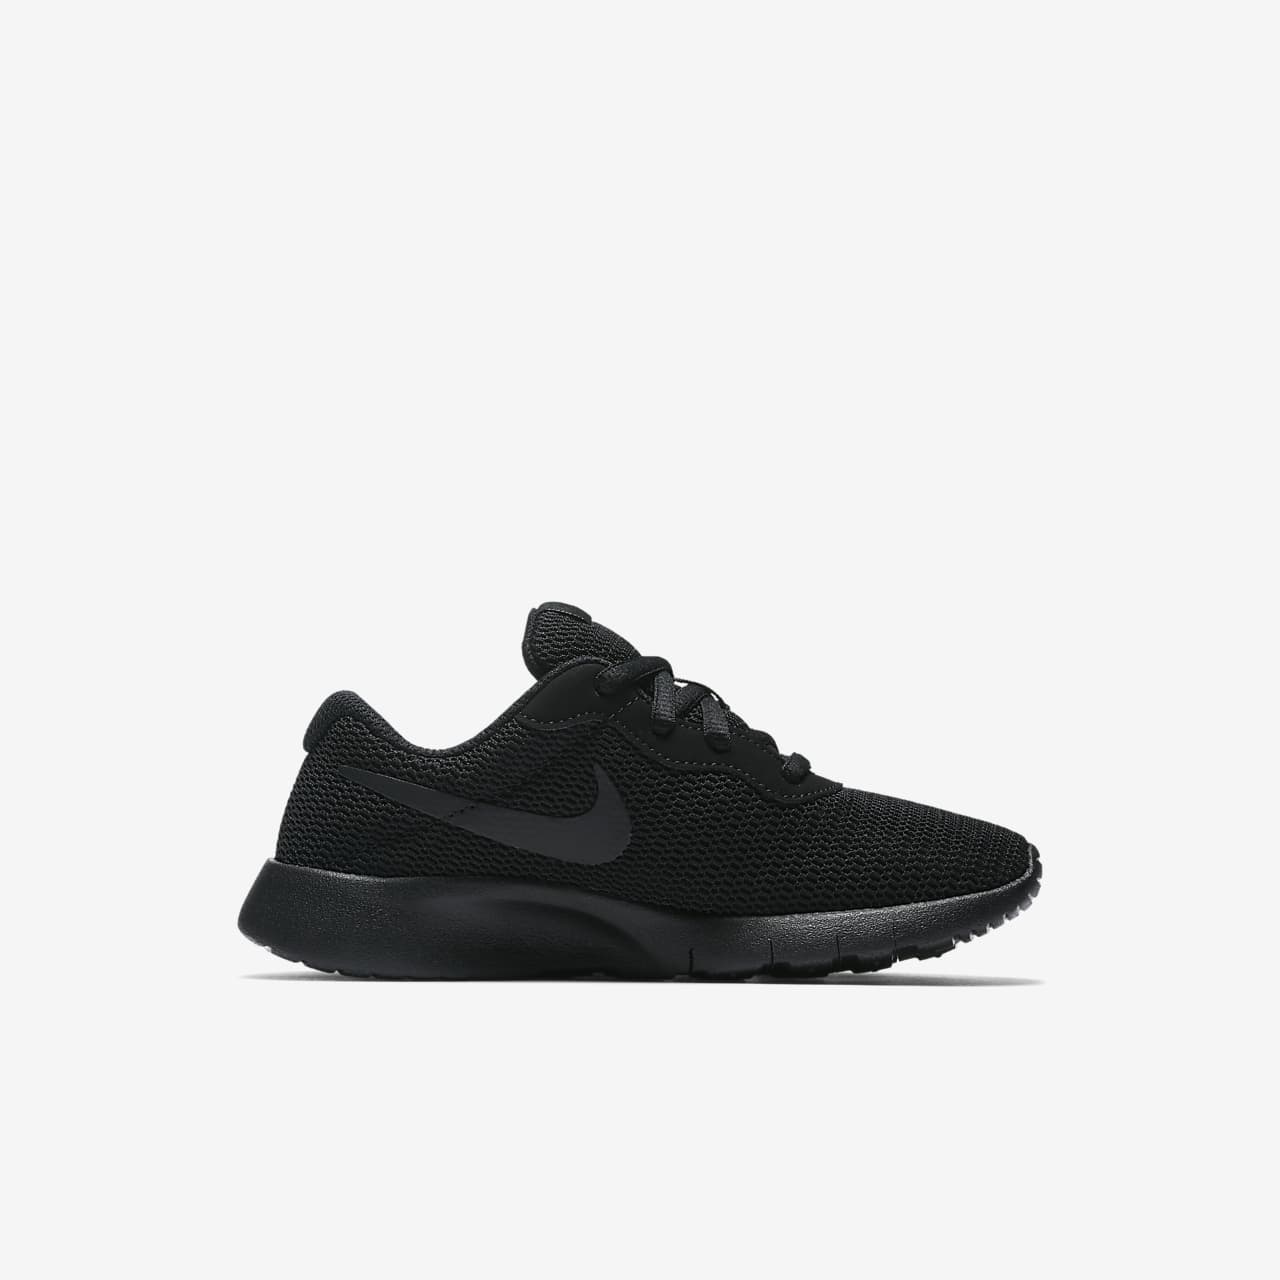 Nike Tanjun Little Kids' Shoe